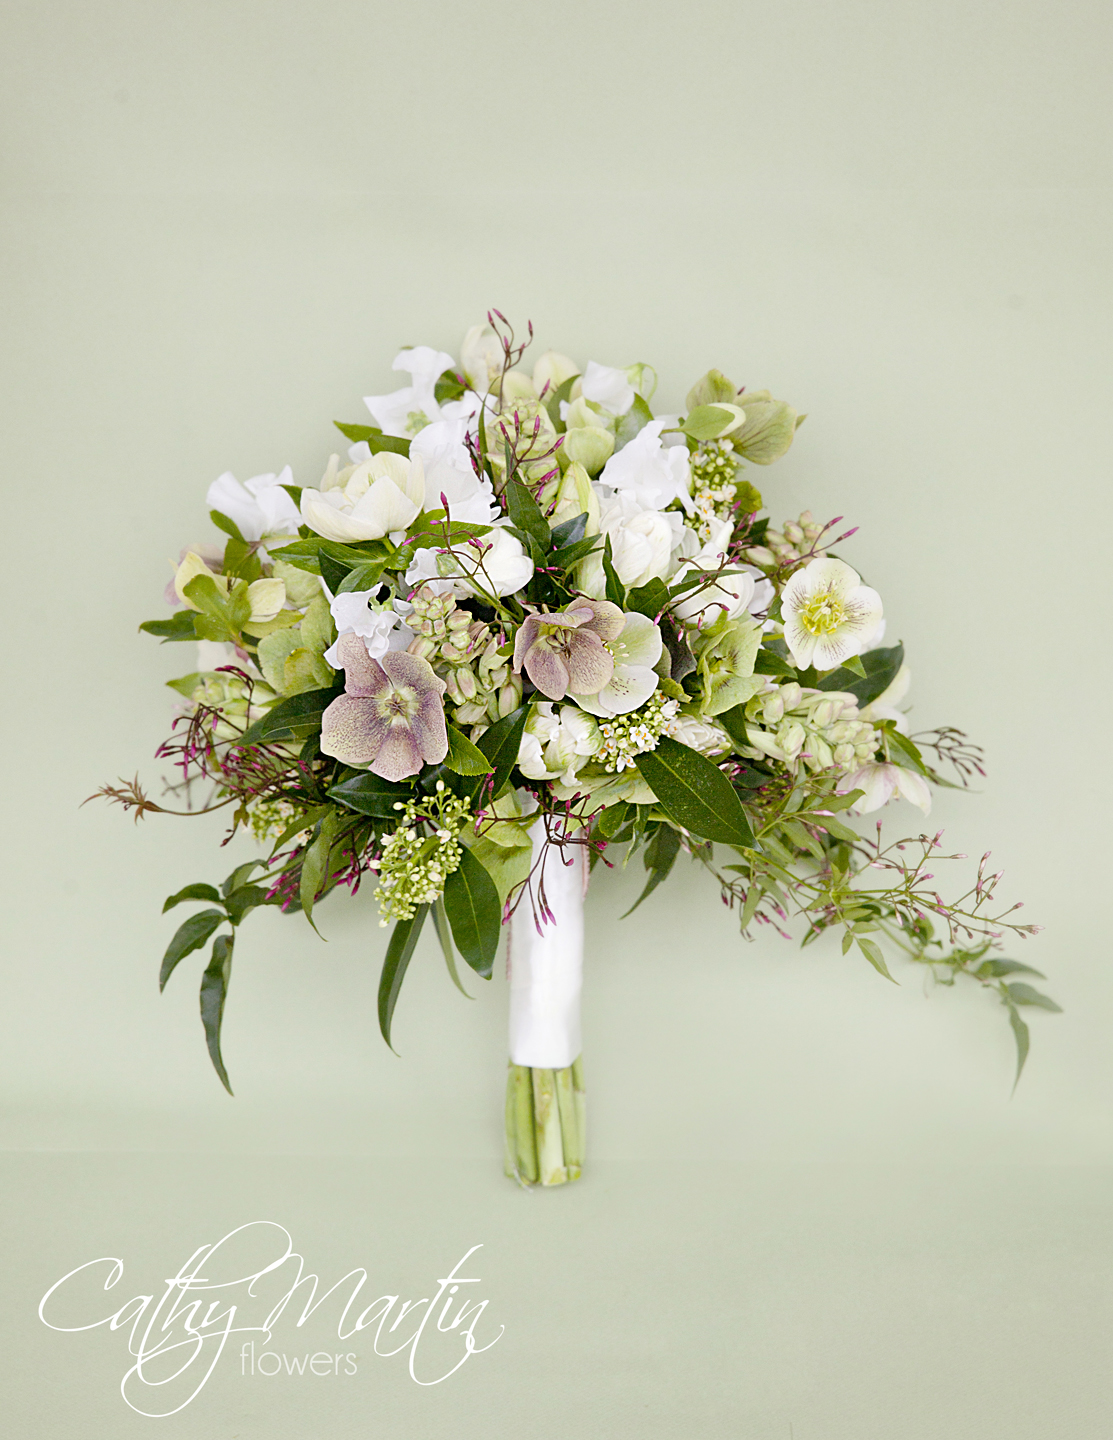 Cathy martin flowers were so honoured to be included on this list of most beautiful bouquets izmirmasajfo